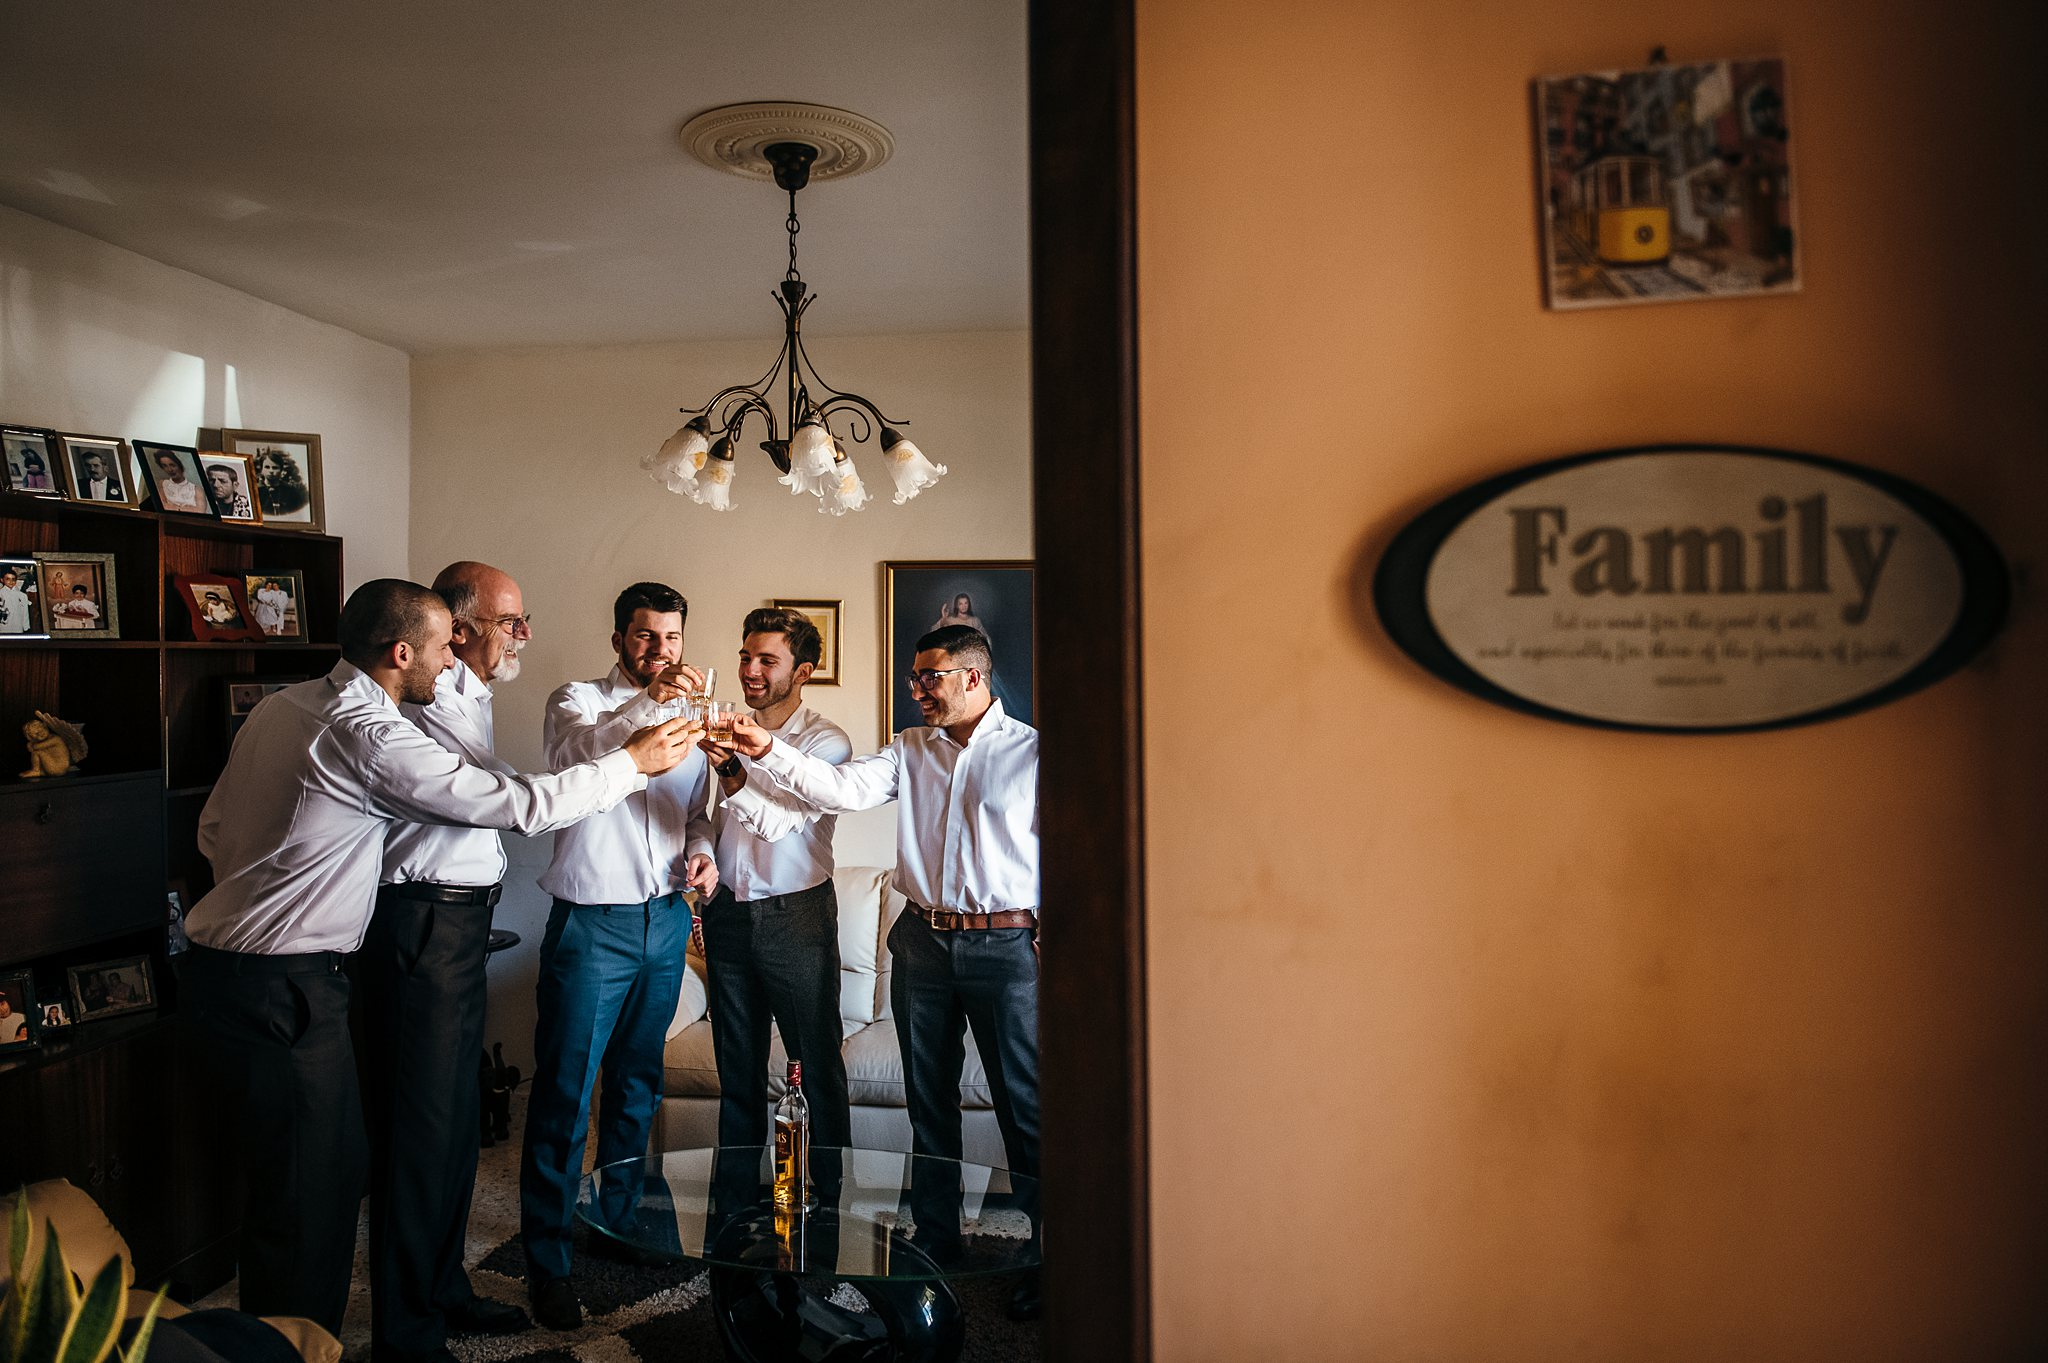 groomsmen-toasting-to-the-groom-photo-by-shane-p-watts-photography.jpg